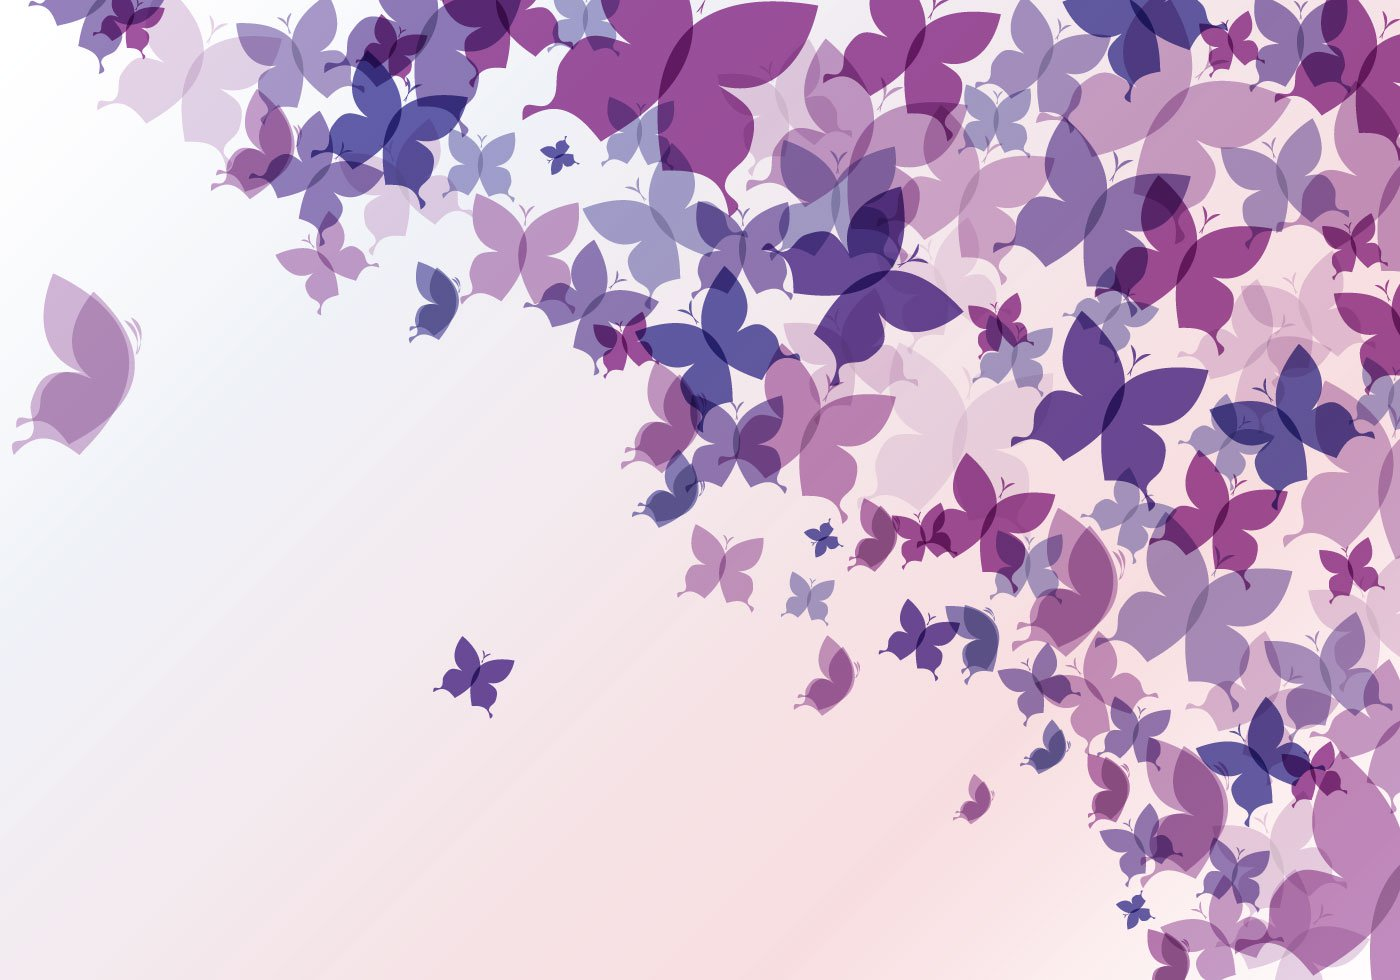 Abstract Butterfly Background   Download Vector Art 1400x980